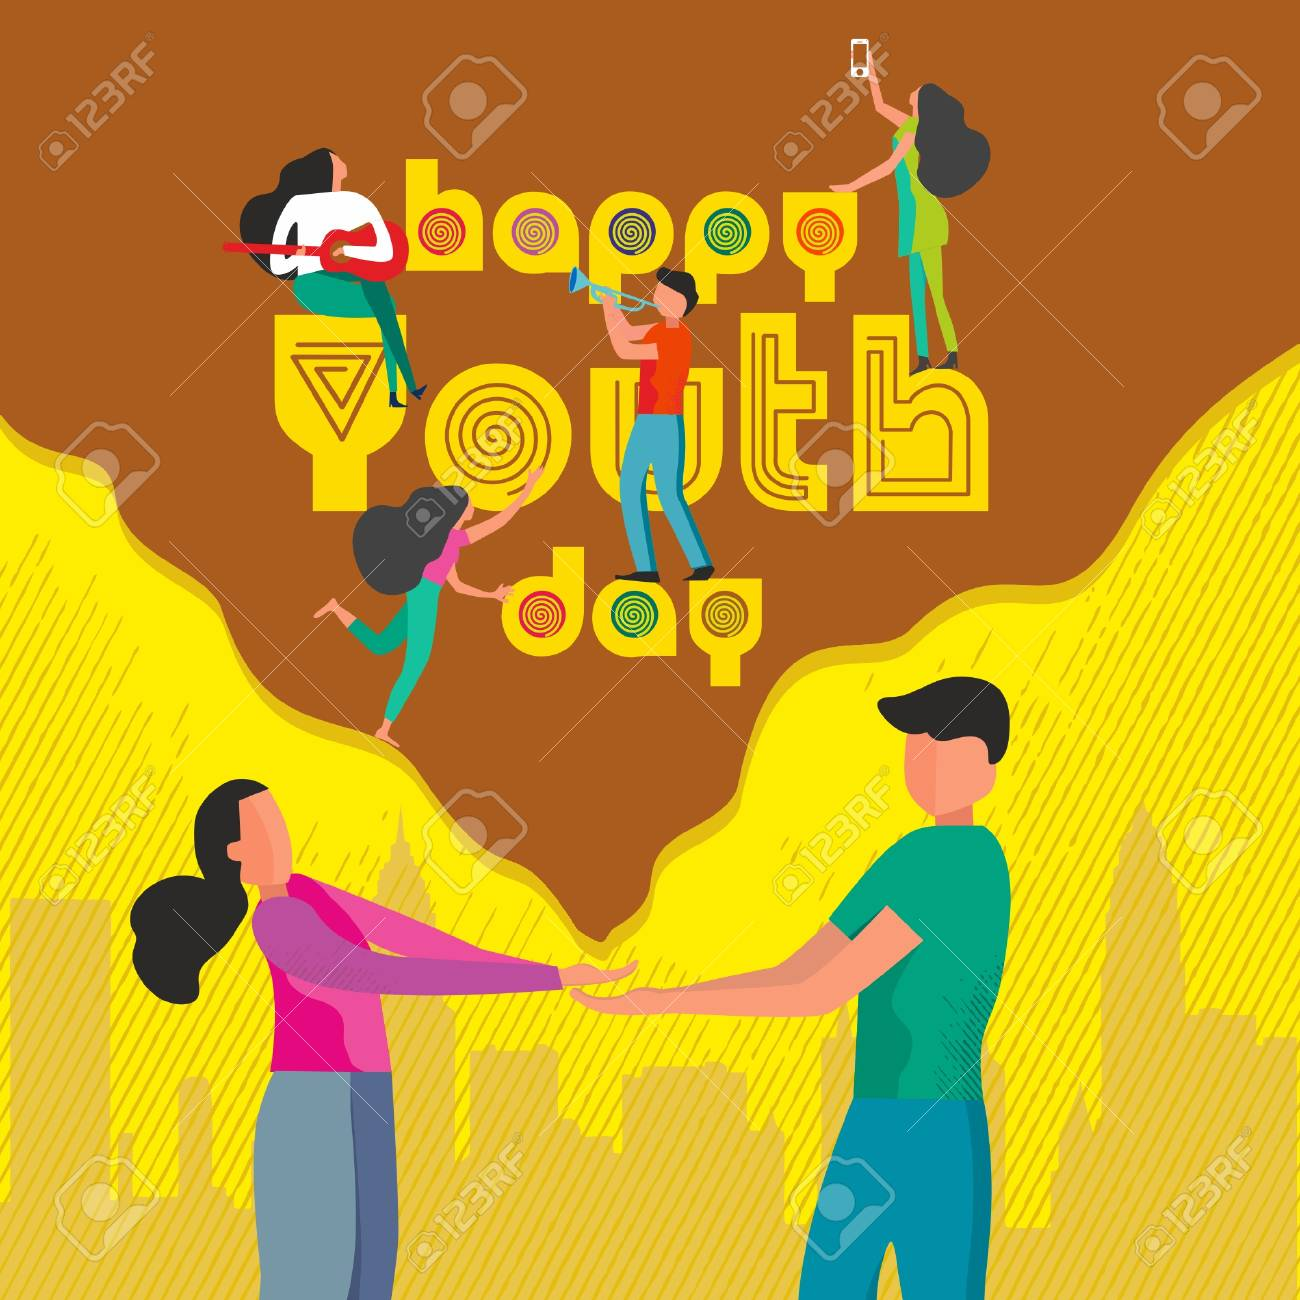 Happy Youth Day Celebration with young Boy and Girl.